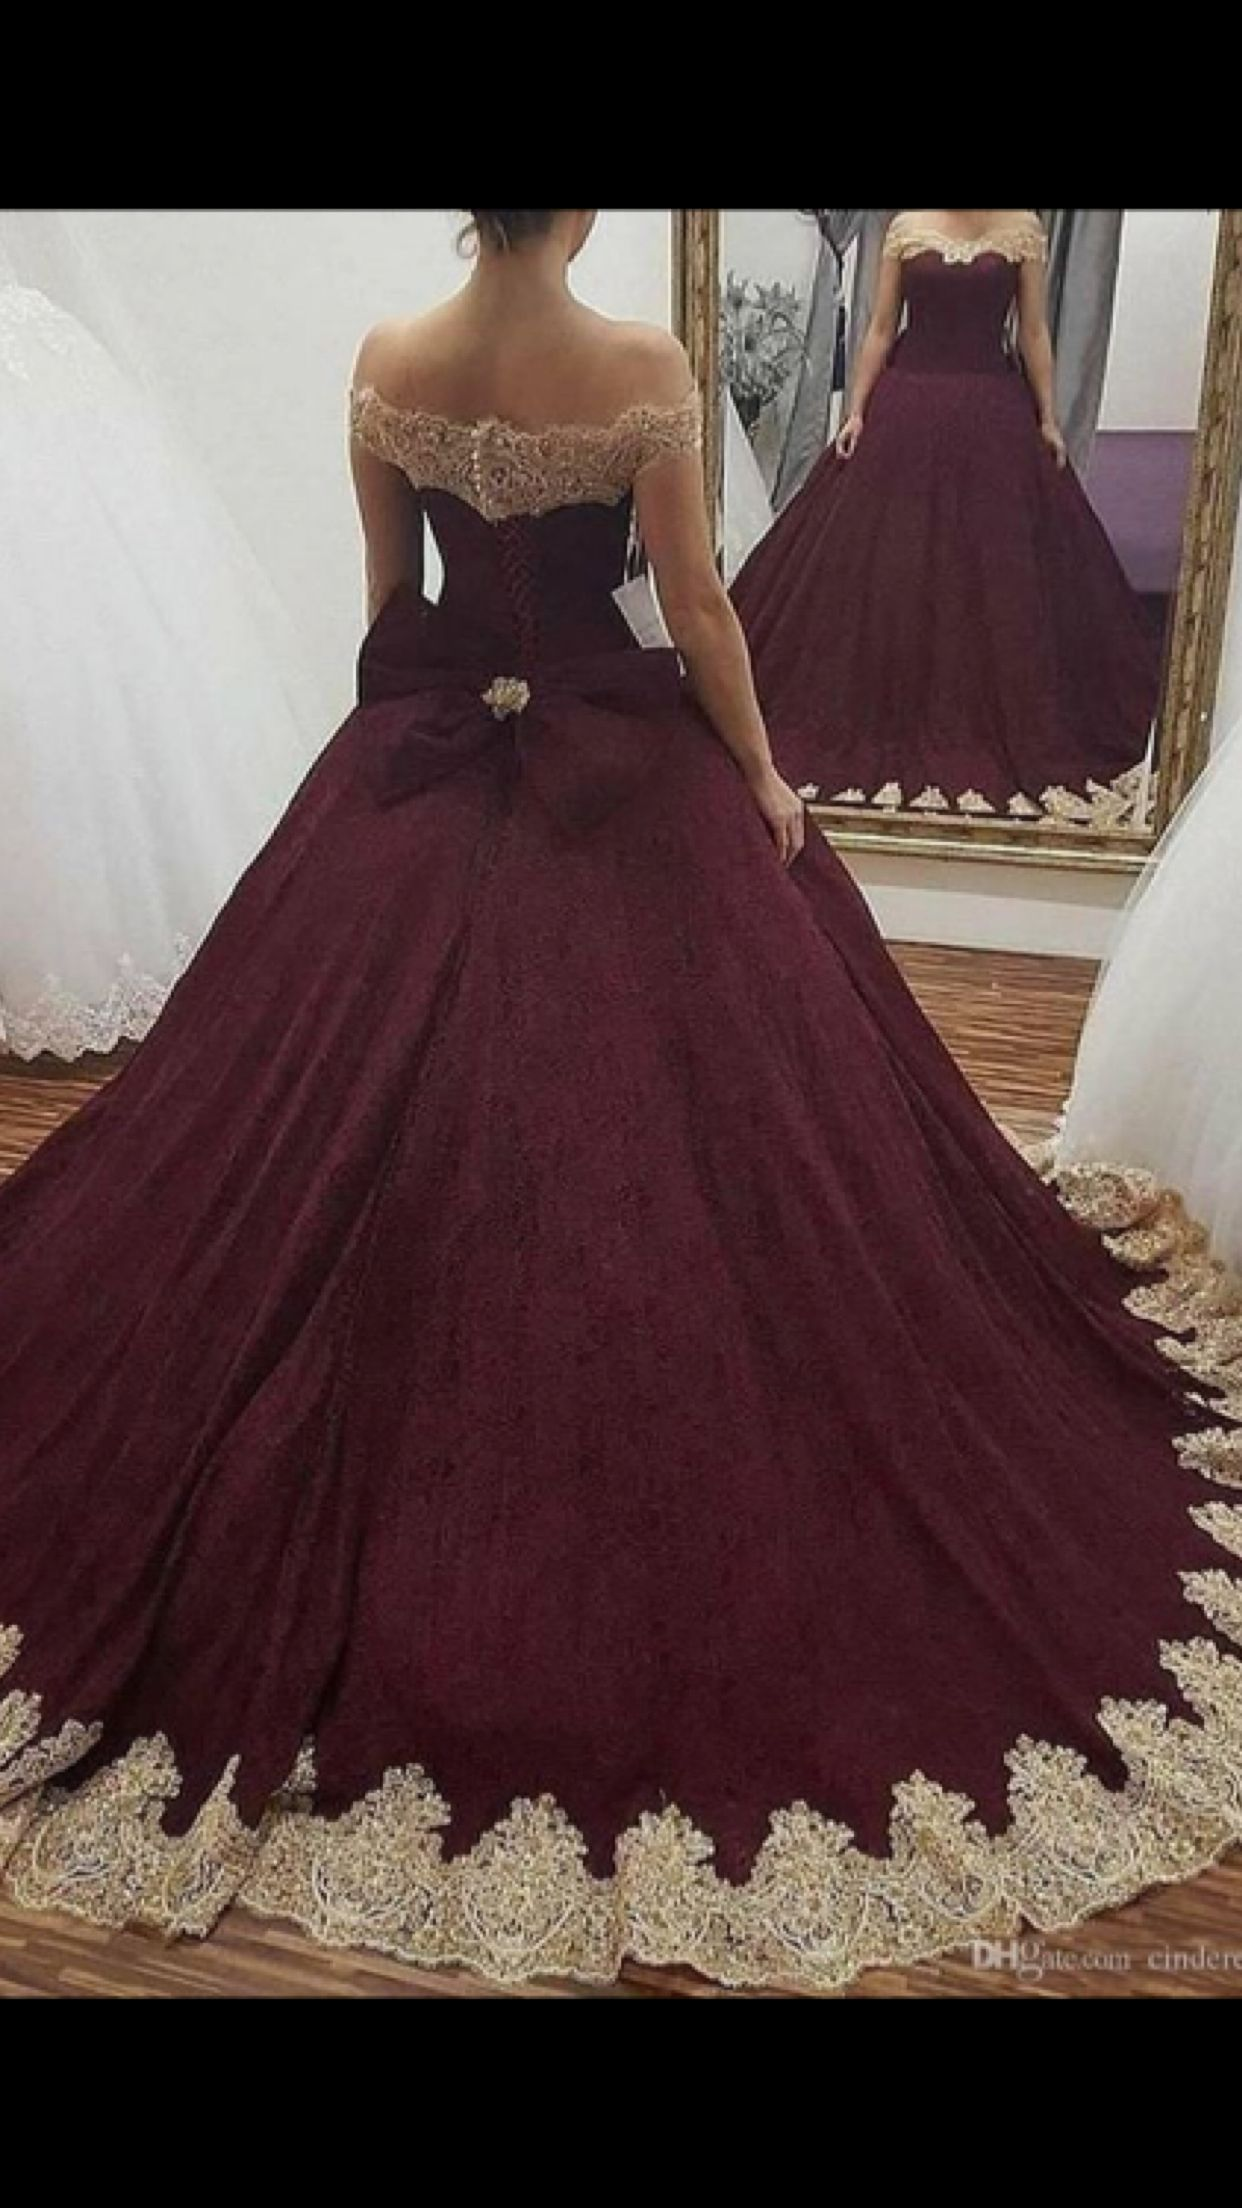 Burgundy Off the Shoulder Ball Gown Quinceanera Dresses 2018 Gold Lace  Appliqued Sweet 16 Prom Dresses Back With Bowknot 49b7c6b39